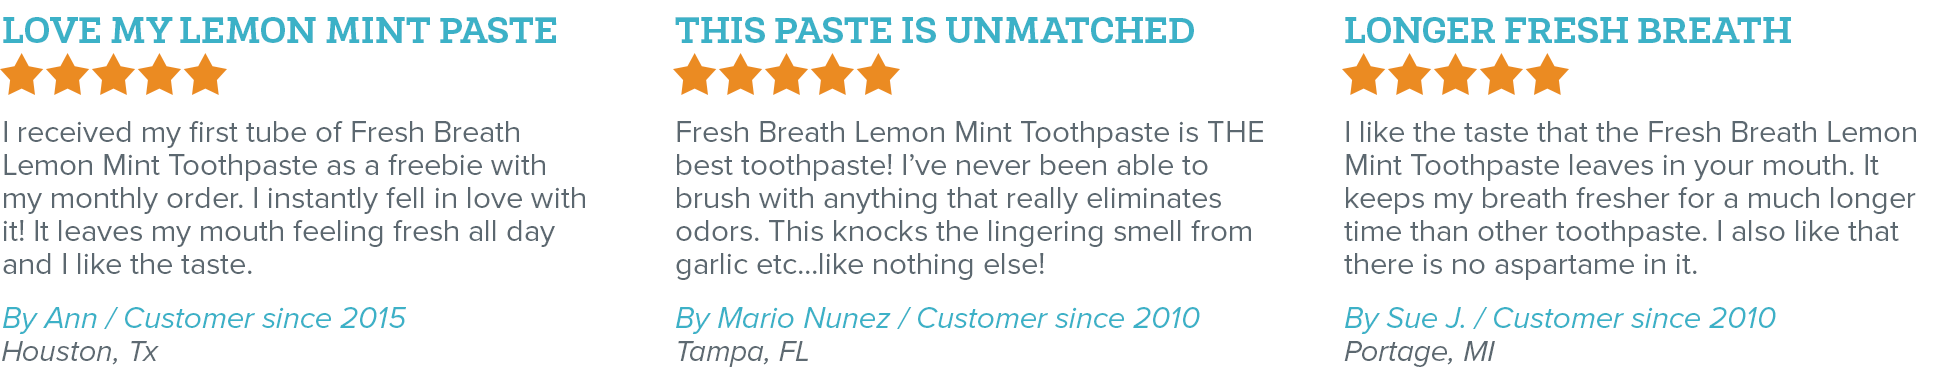 Oxyfresh - Eliminate Bad Breath - Fresh Breath Lemon Mint Toothpaste Reviews